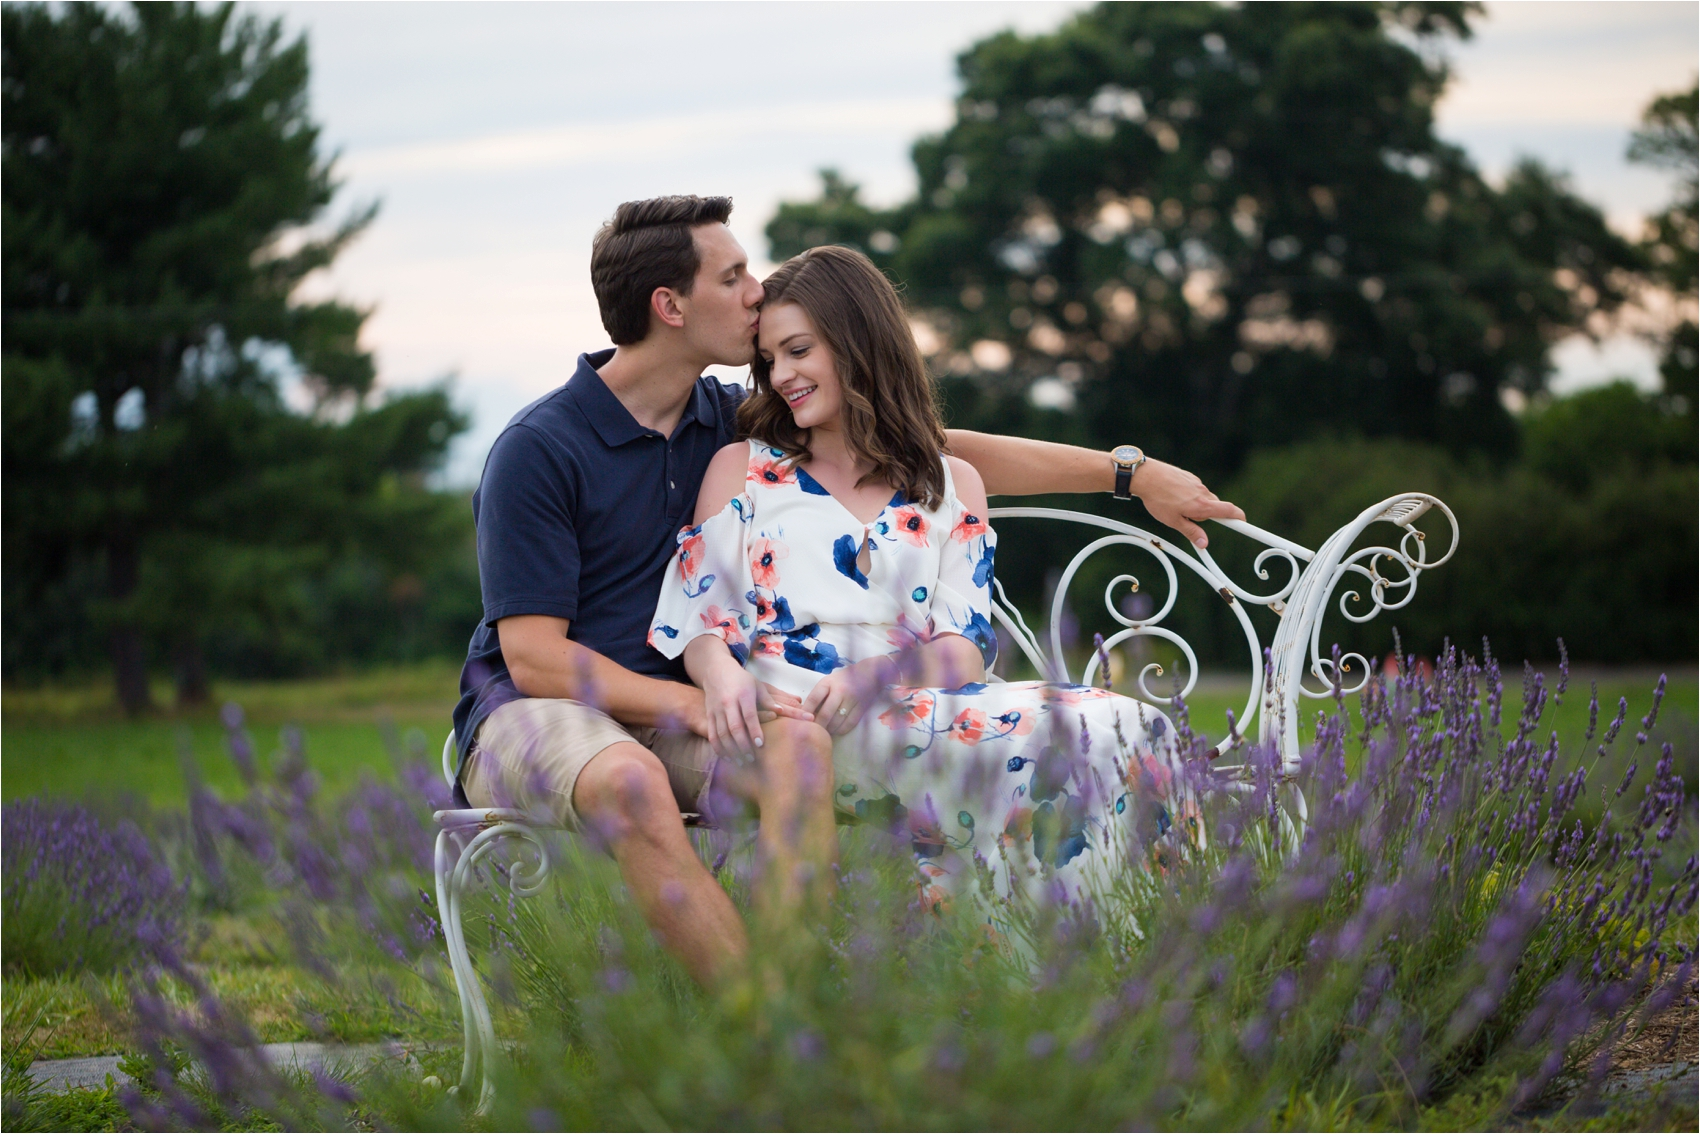 Seven-Oaks-Lavendar-Farm-Virginia-Engagement-Session-0228.jpg